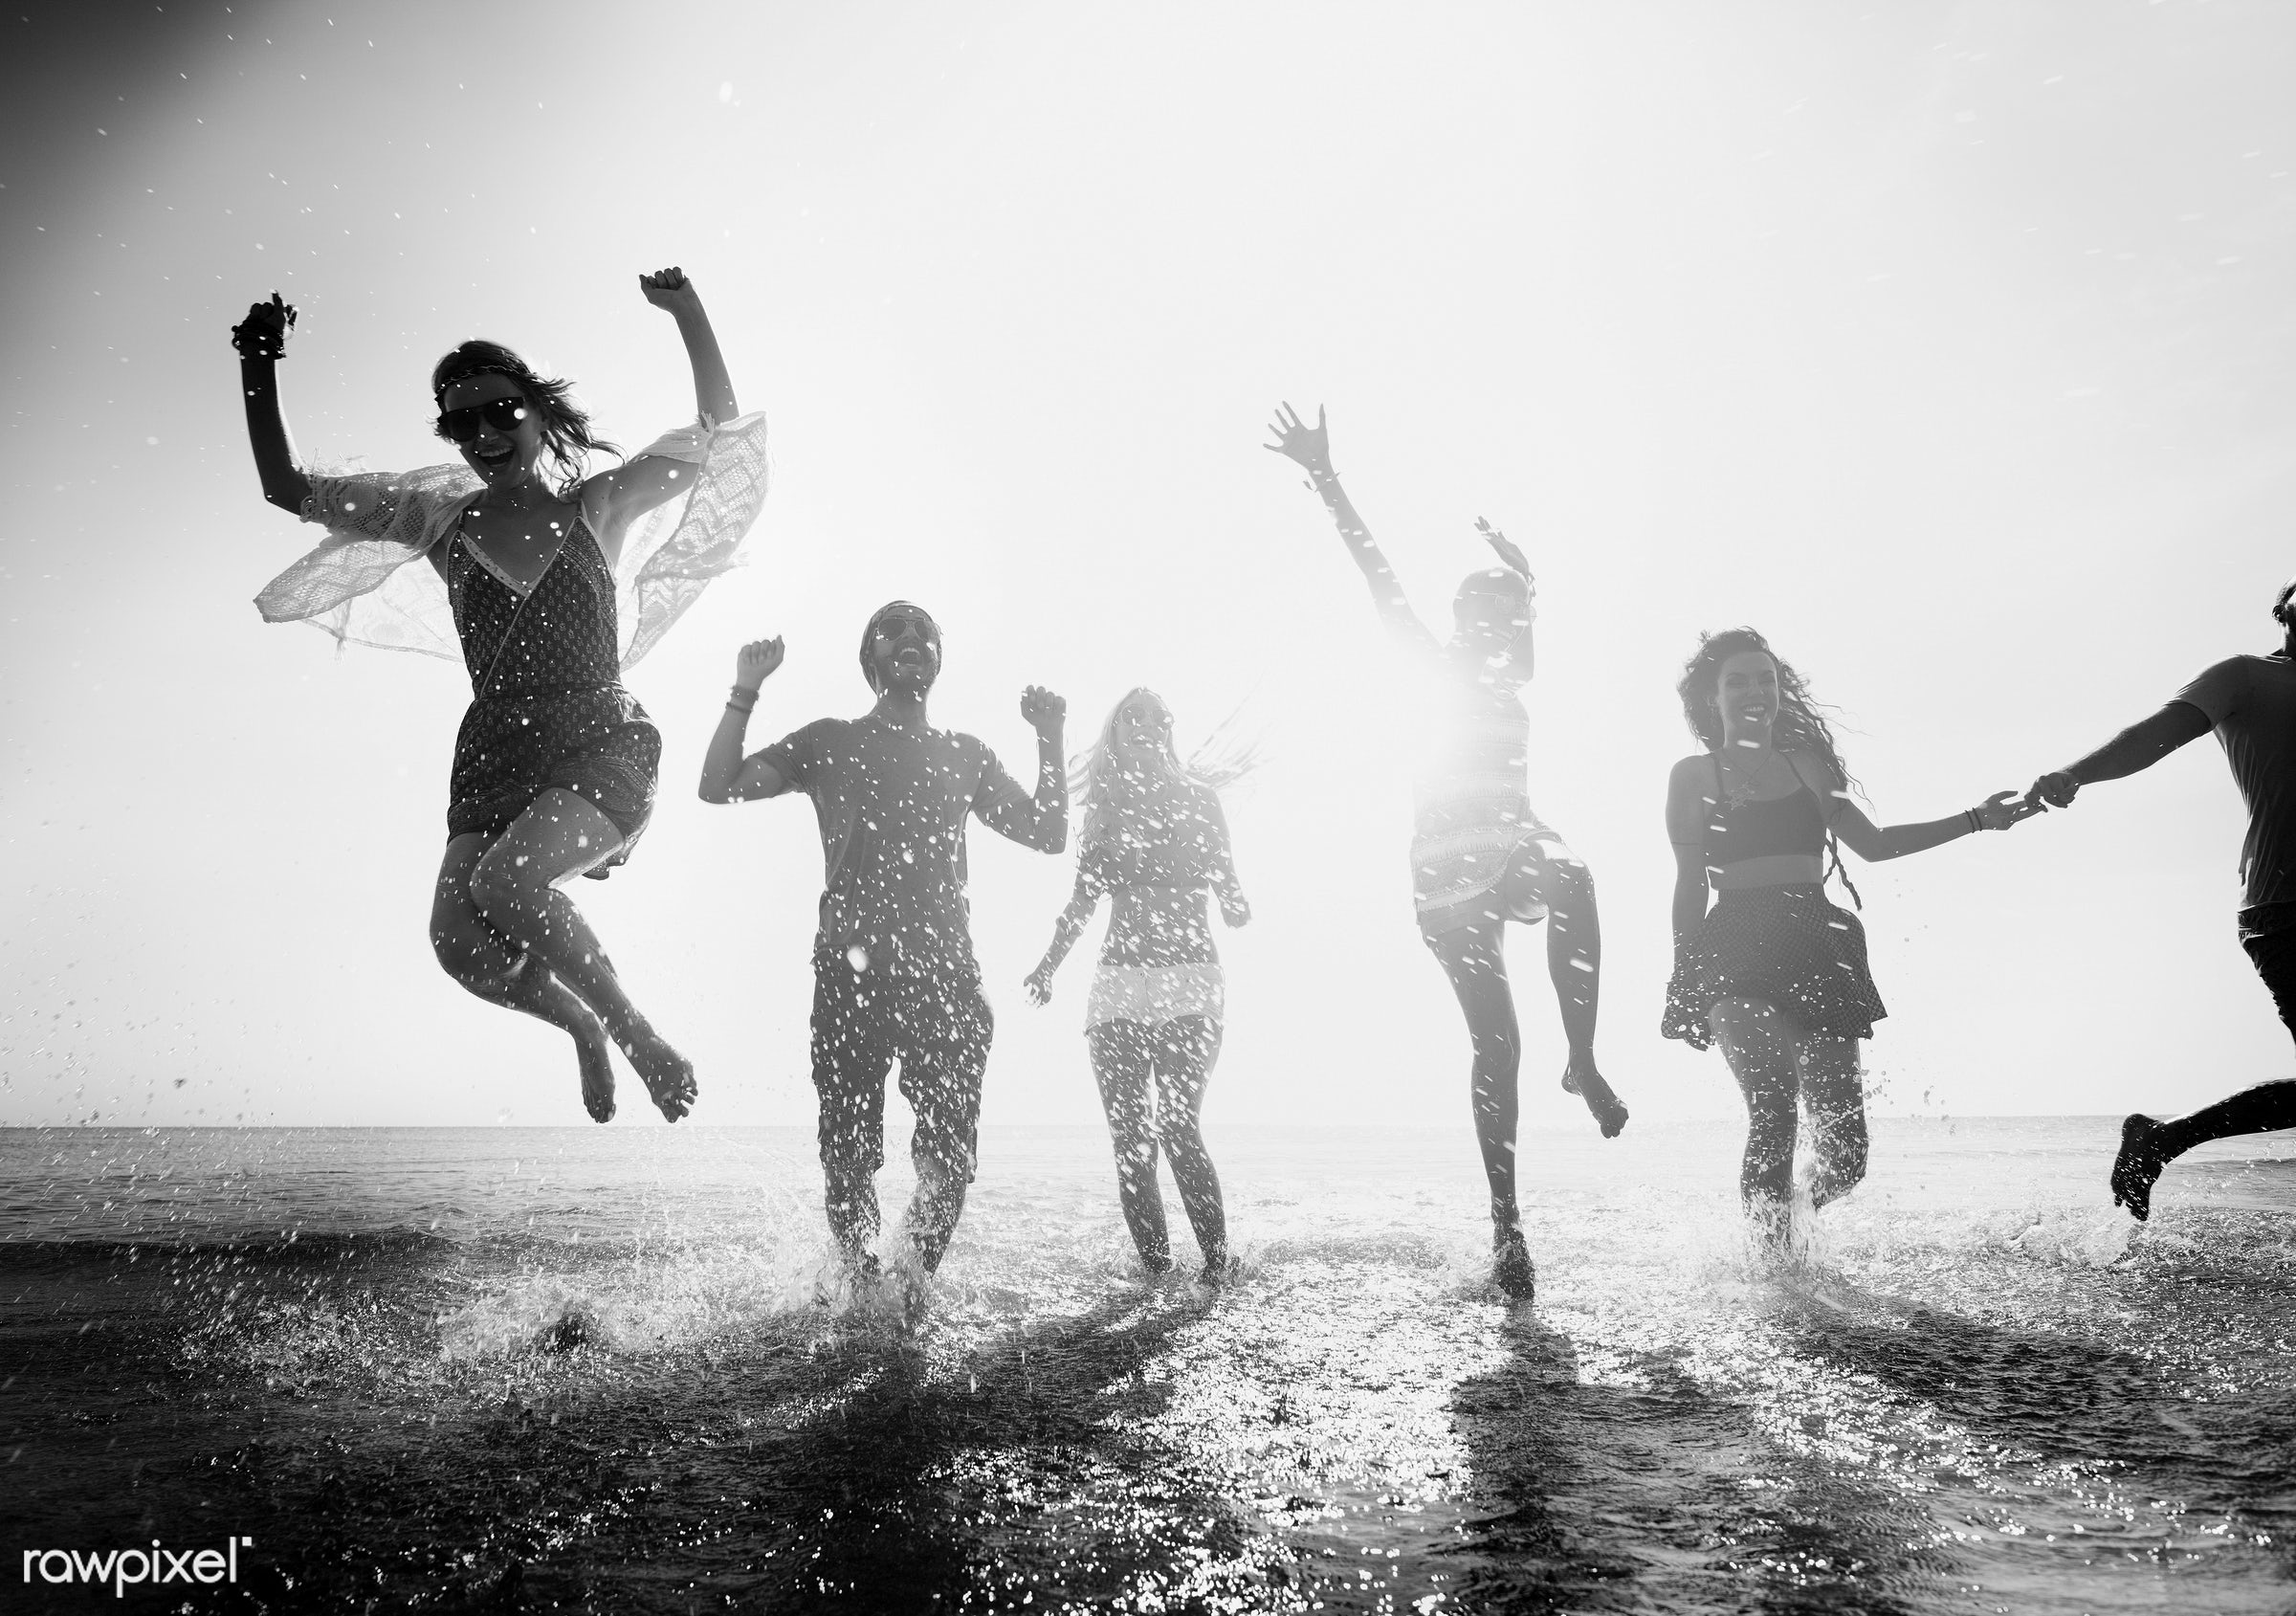 action, african descent, arms raised, backlit, beach, blurred, bonding, celebration, cheerful, chilling, dusk, ecstatic,...